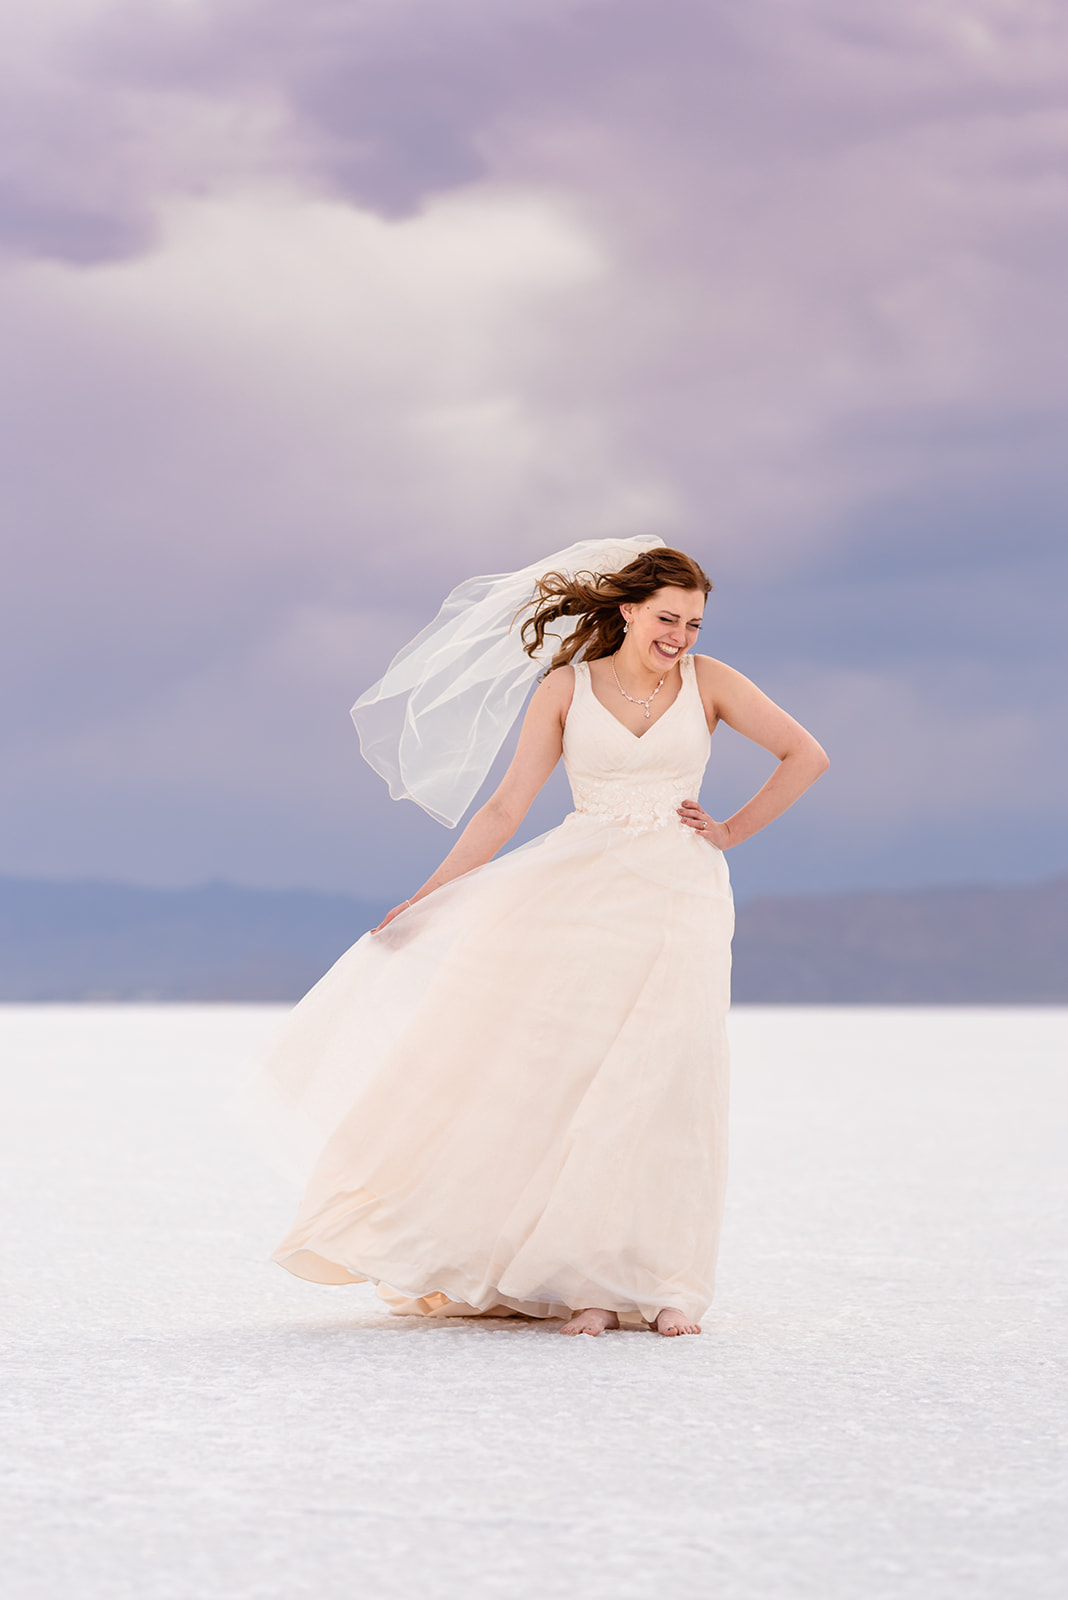 Laughing bridal portrait of Adri at the Bonneville Salt Falts in Utah. Embrace the wind! Taken by Coley Cook Photography.